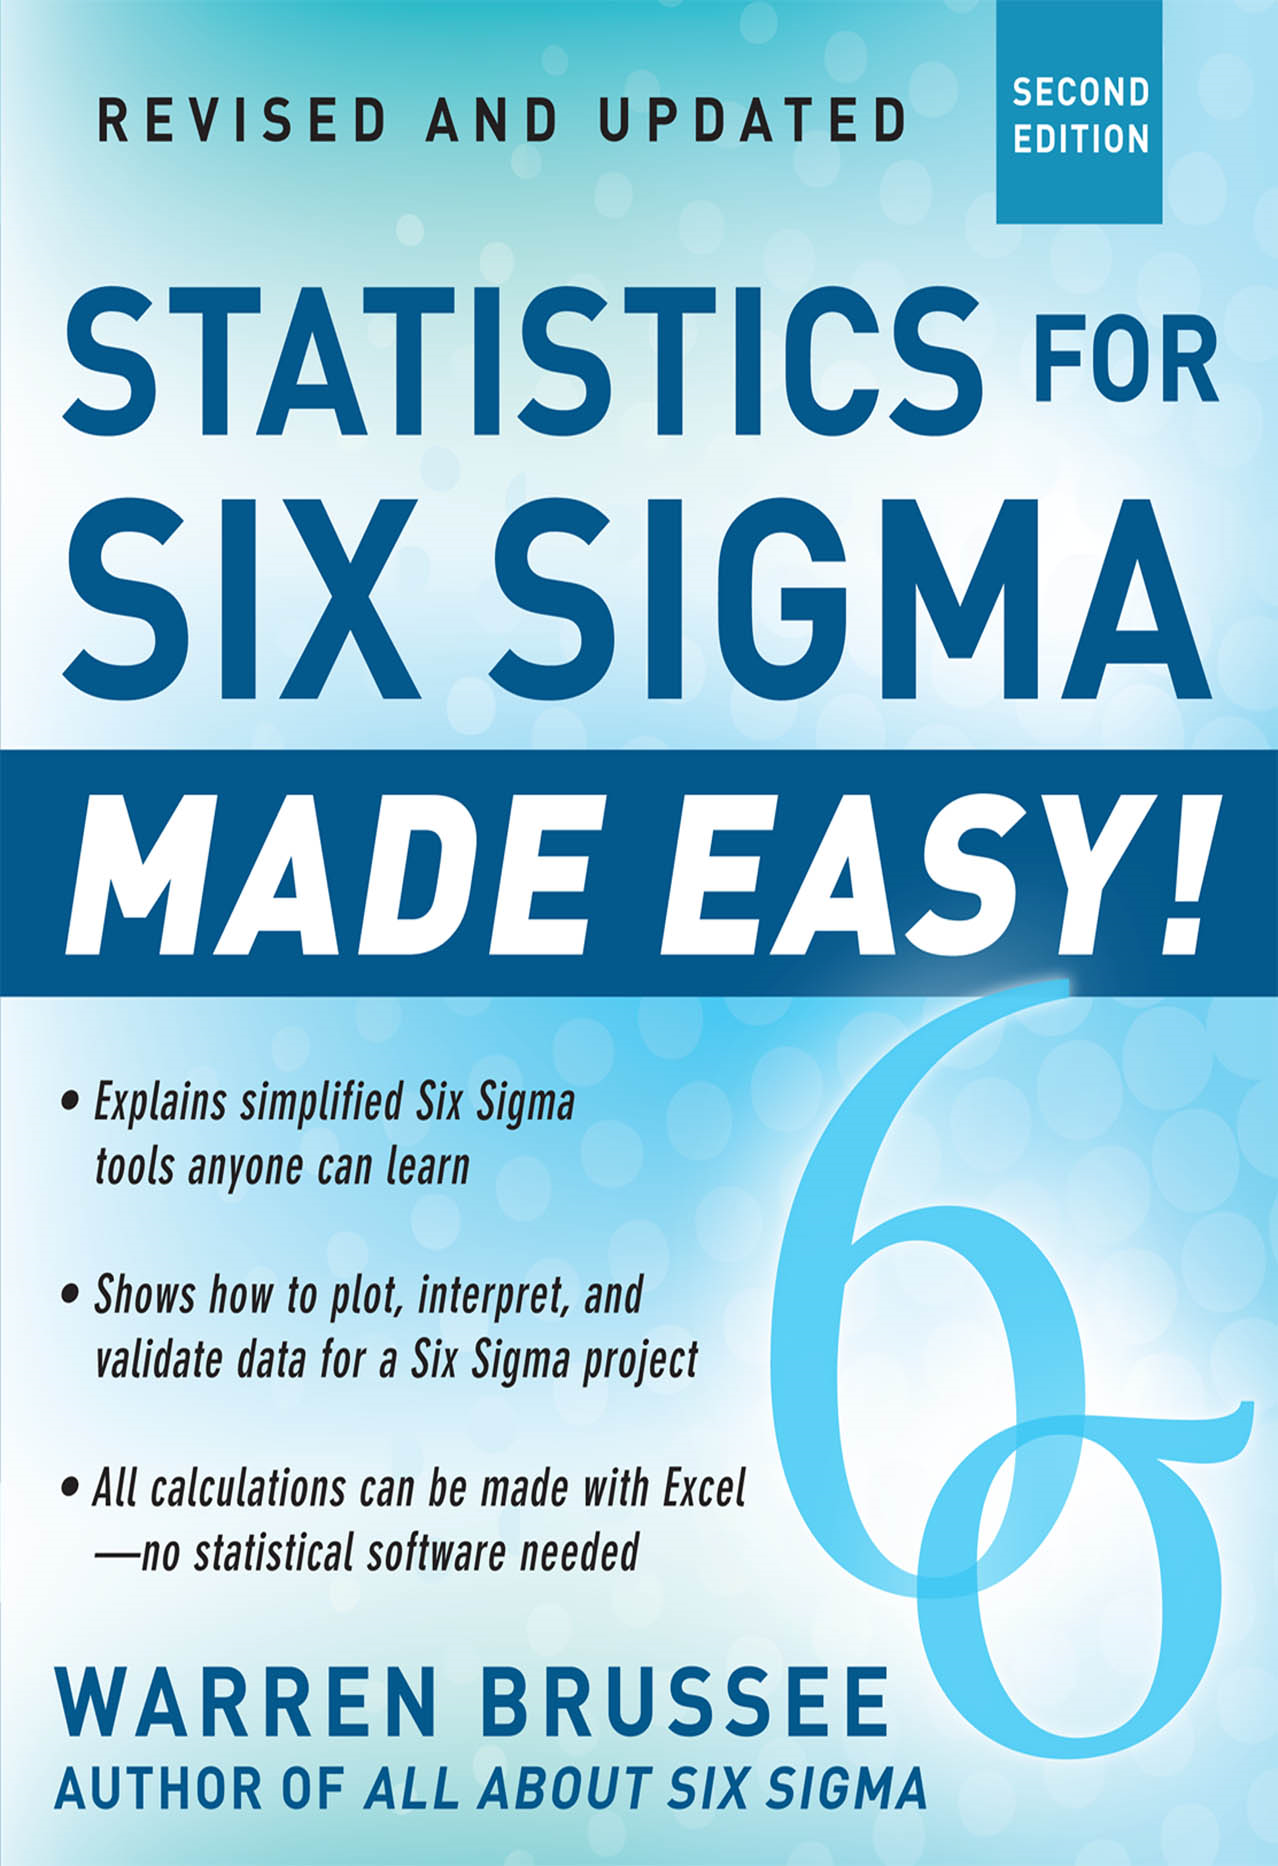 Statistics for Six Sigma Made Easy! Revised and Expanded Second Edition By: Warren Brussee